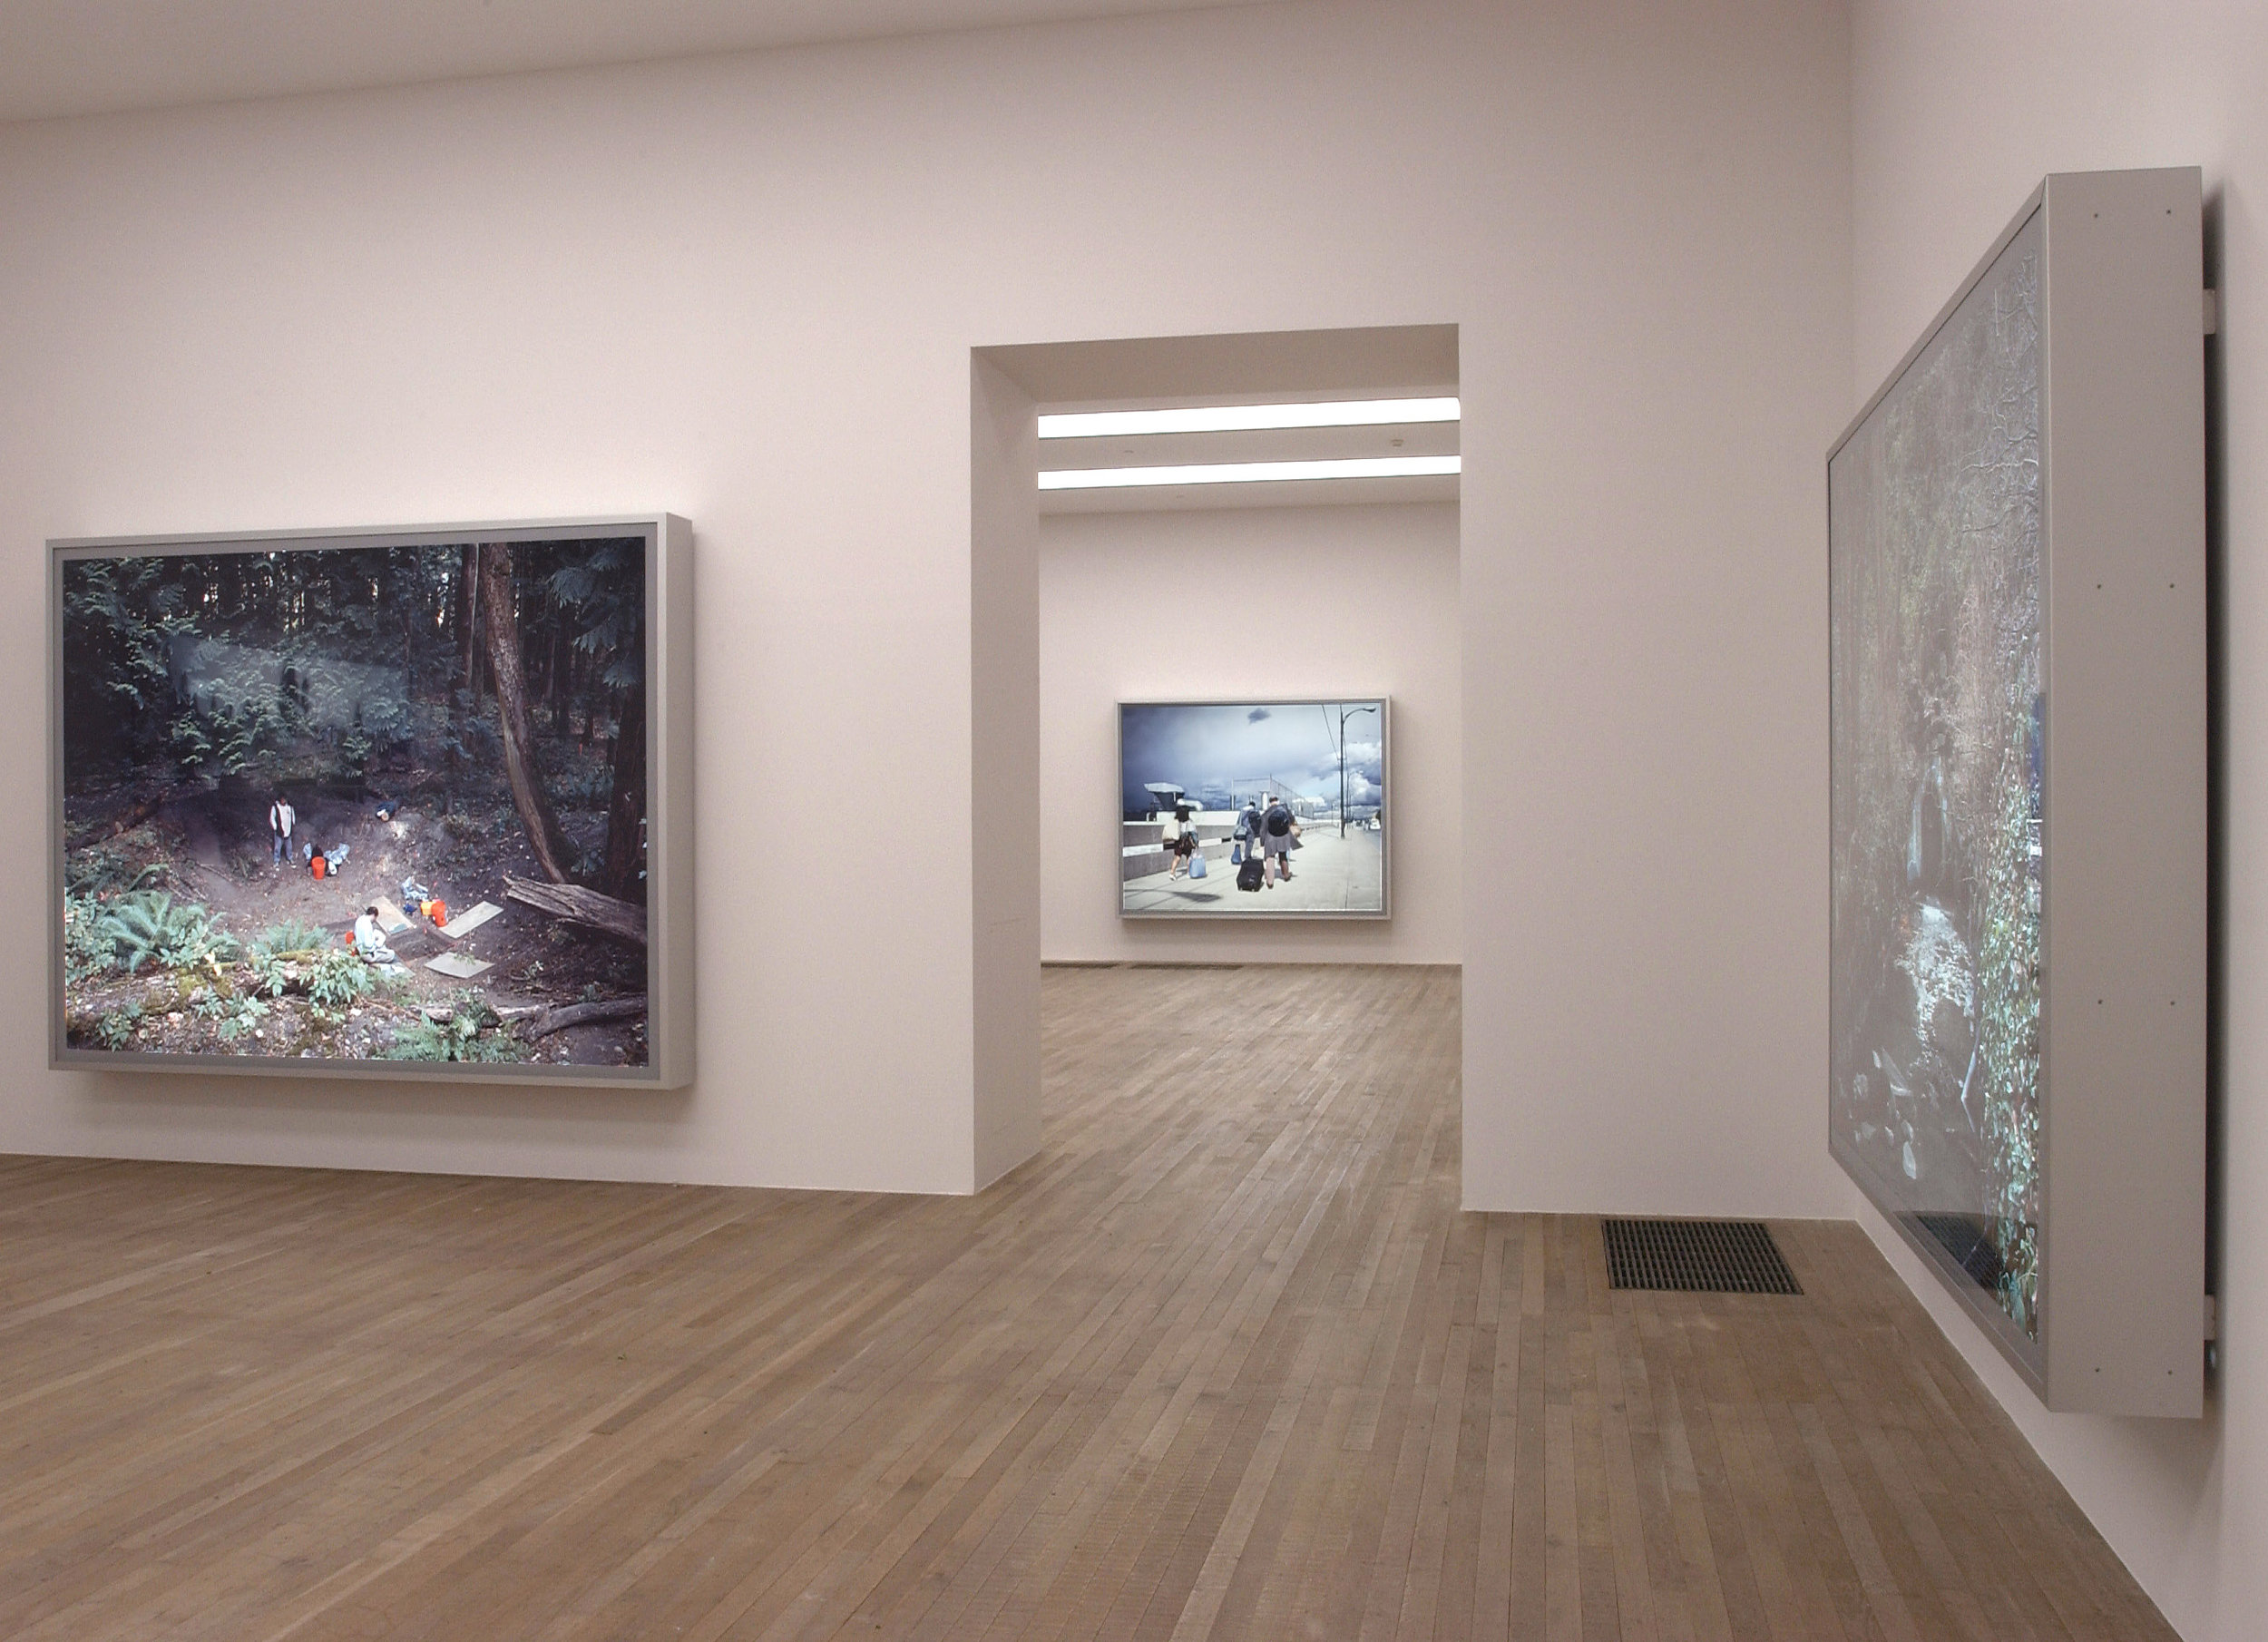 jeff wall 1978 - 2004 exhibition view.jpg